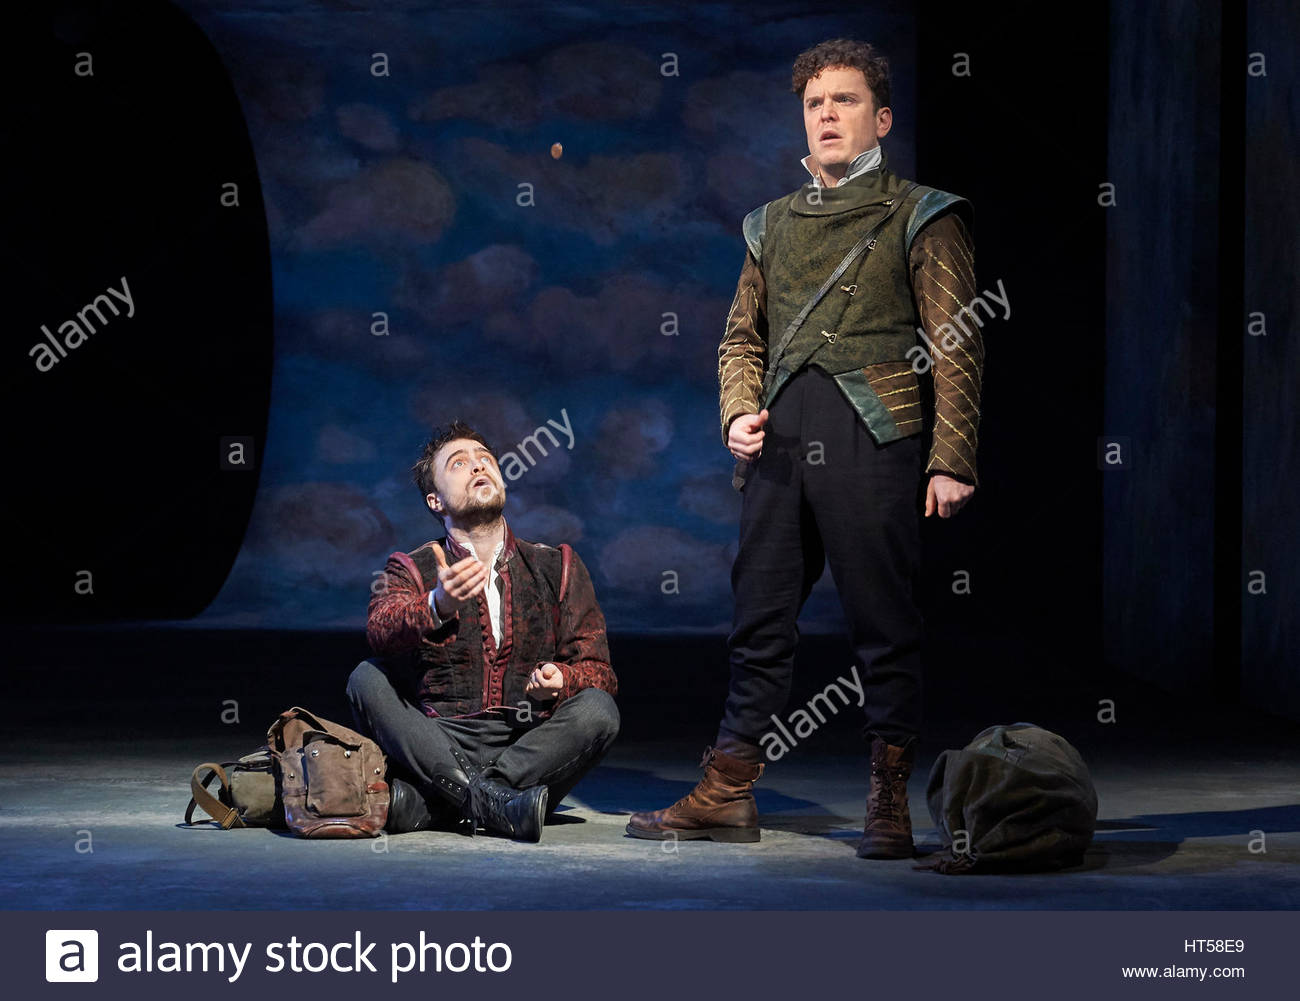 Rosencrantz and Guildenstern by Tom Stoppard, directed by David Leveaux. With Daniel Radcliffe as Rosencrantz, Joshua - Stock Image